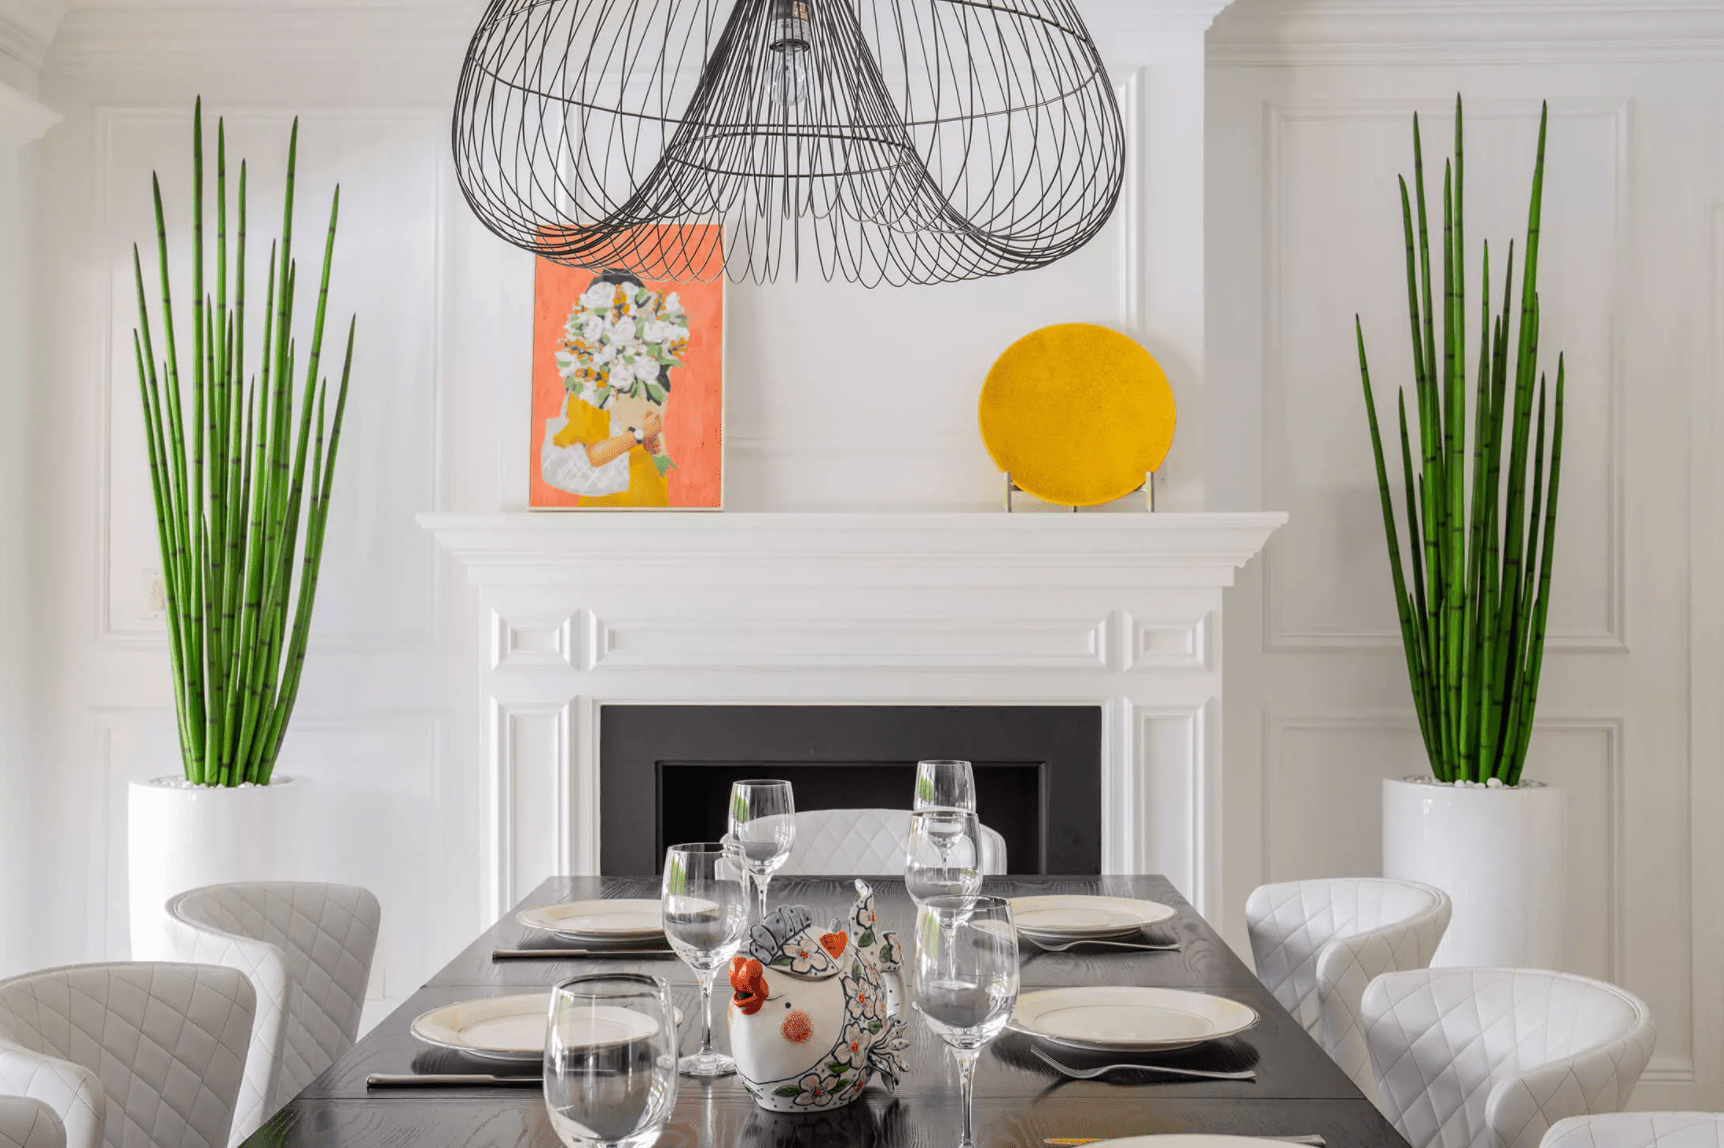 A white room with orange, yellow, and green accents